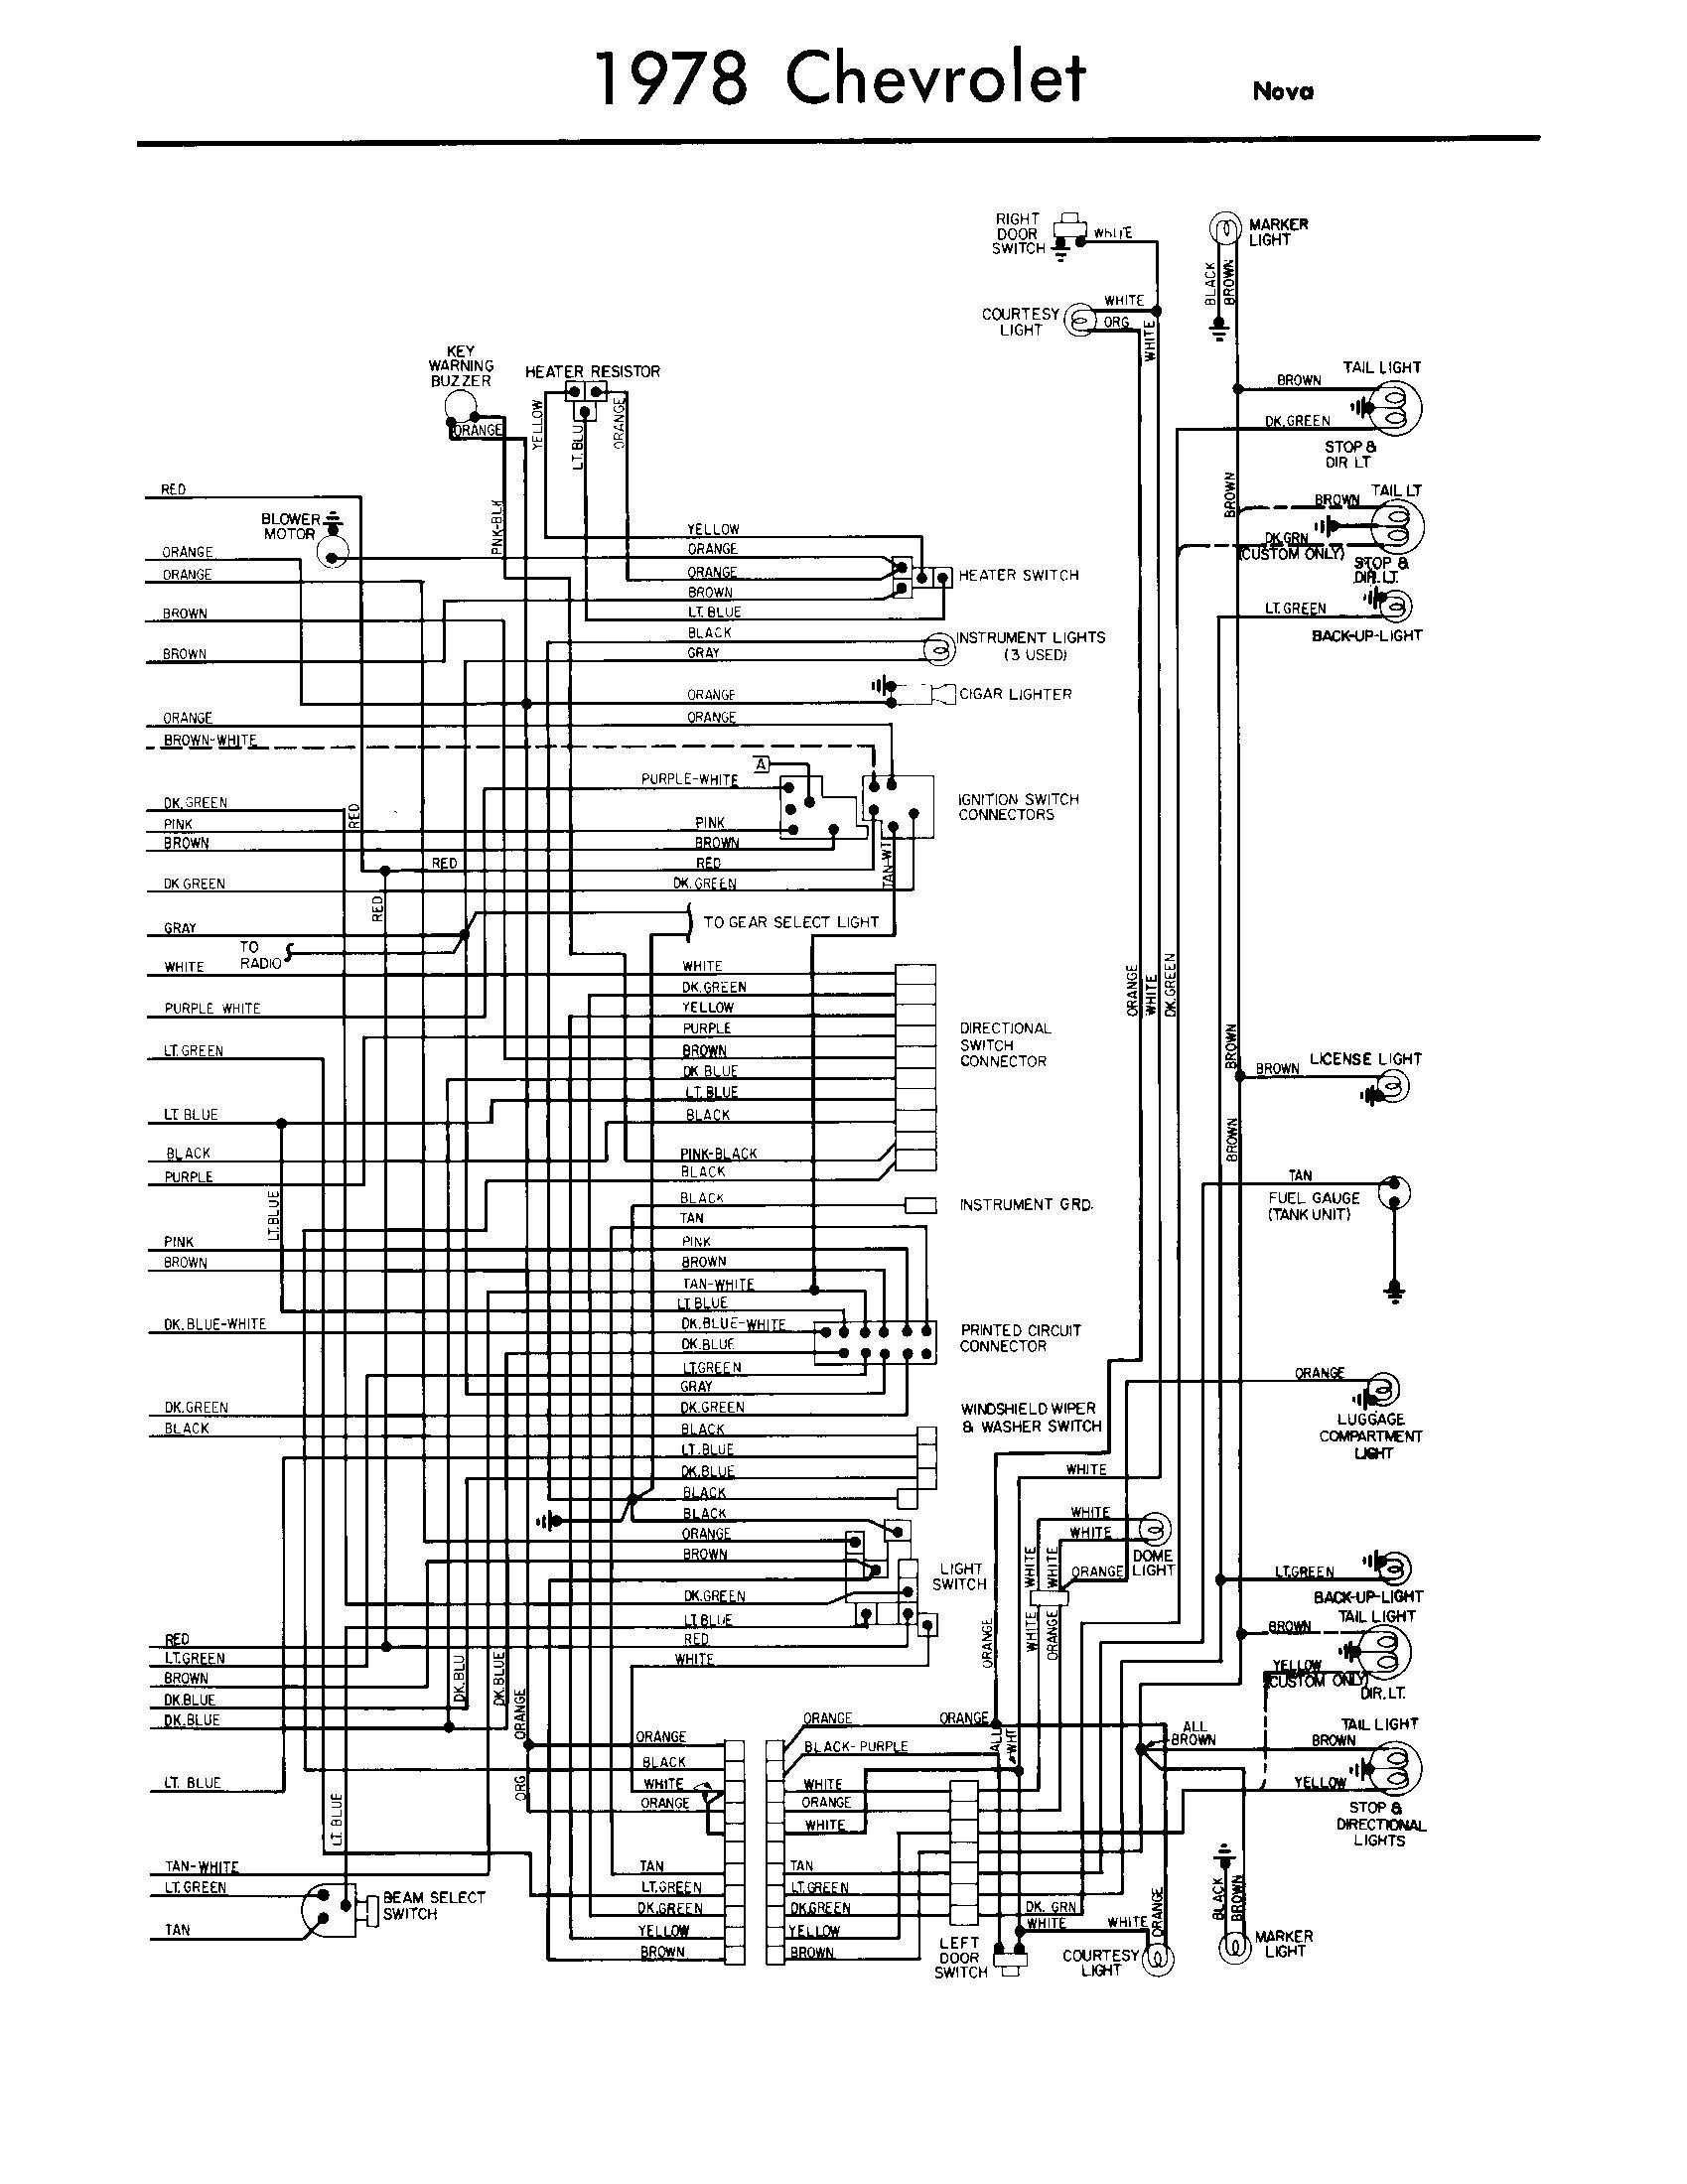 1978 Chevy 1500 Truck Diagram Wire Data Schema. 1978 Chevy Pickup Wiring Diagram Schematic Diagrams U2022 Rh Detox Design Co K10 Bonanza. Chevrolet. 1978 Chevy Scottsdale Wiring Diagram At Scoala.co